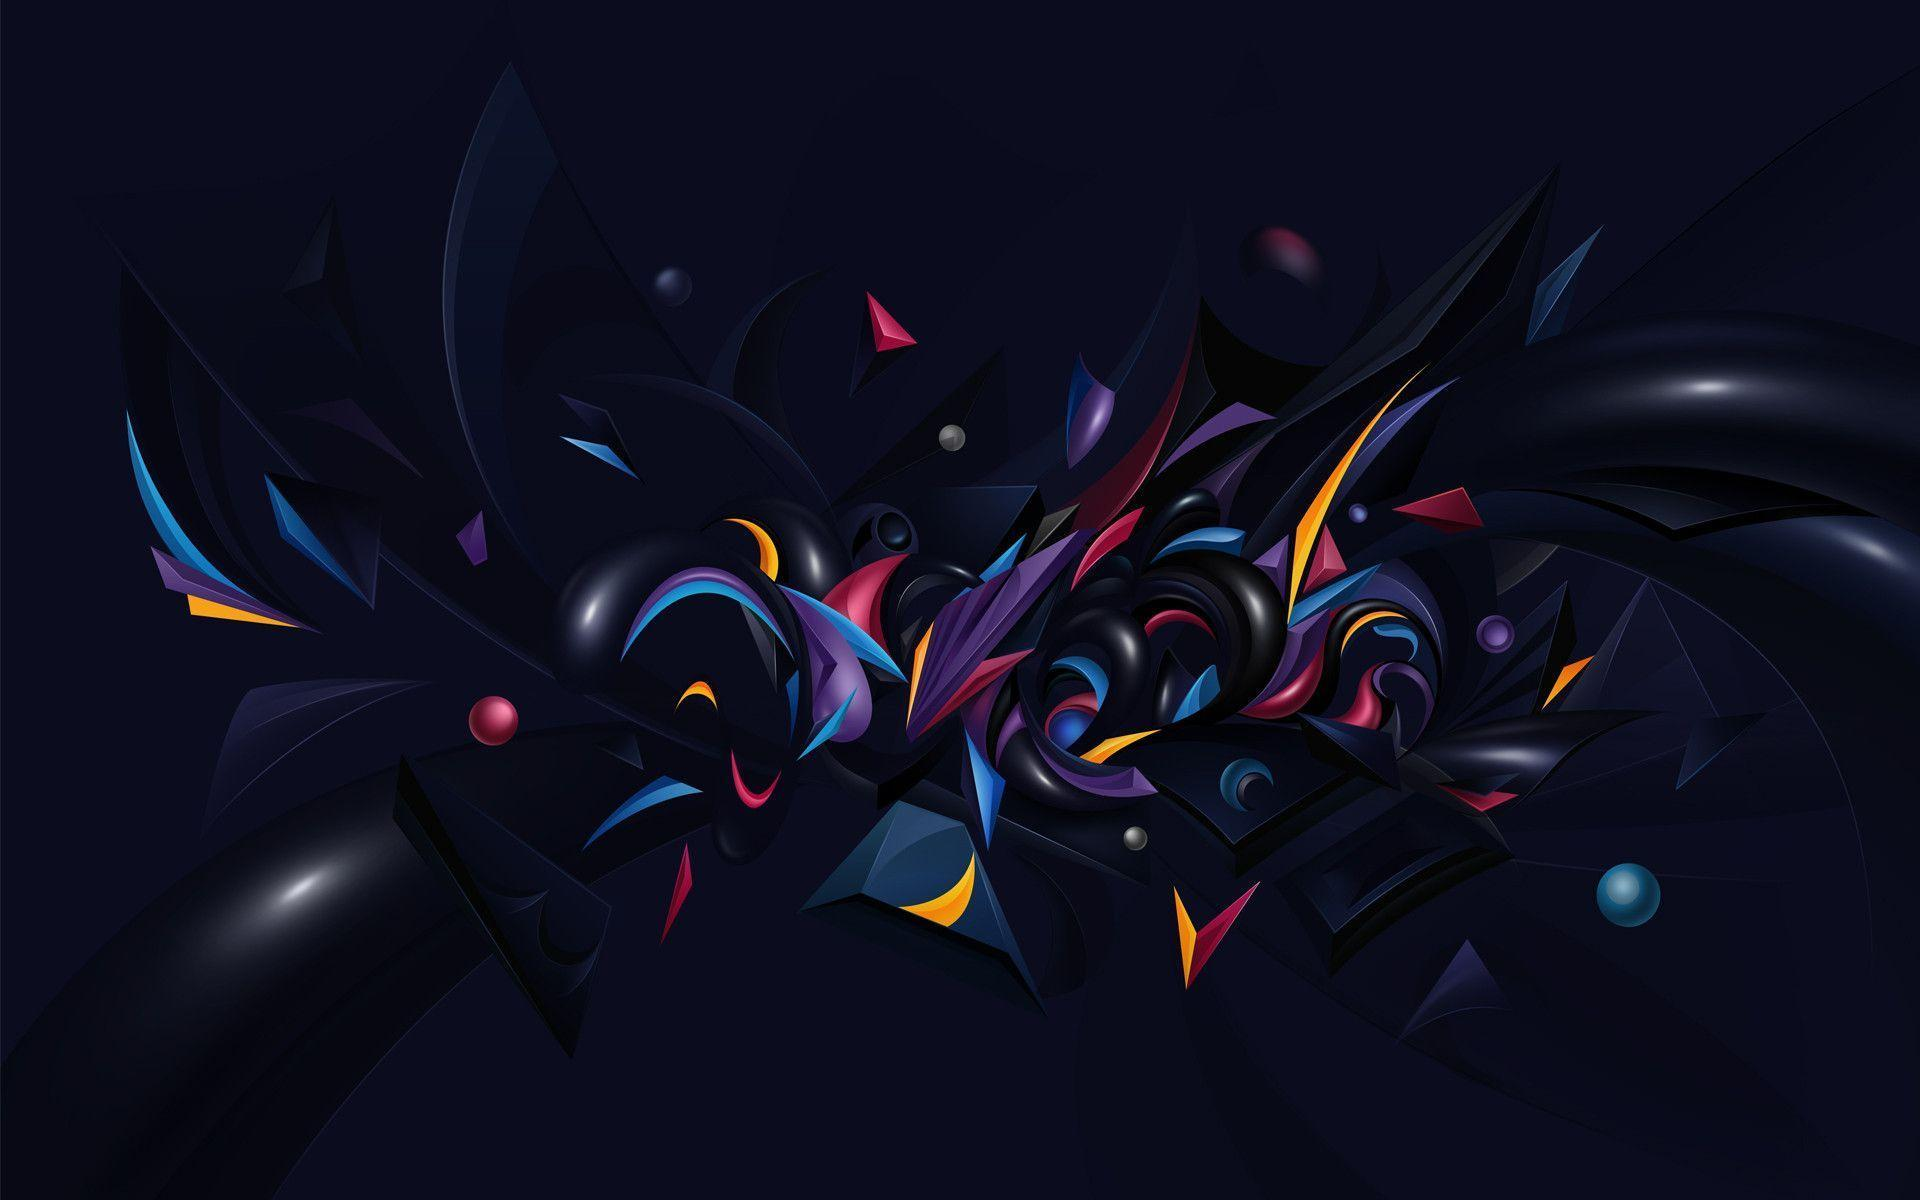 Abstract Chaos Desktop WallPaper HD